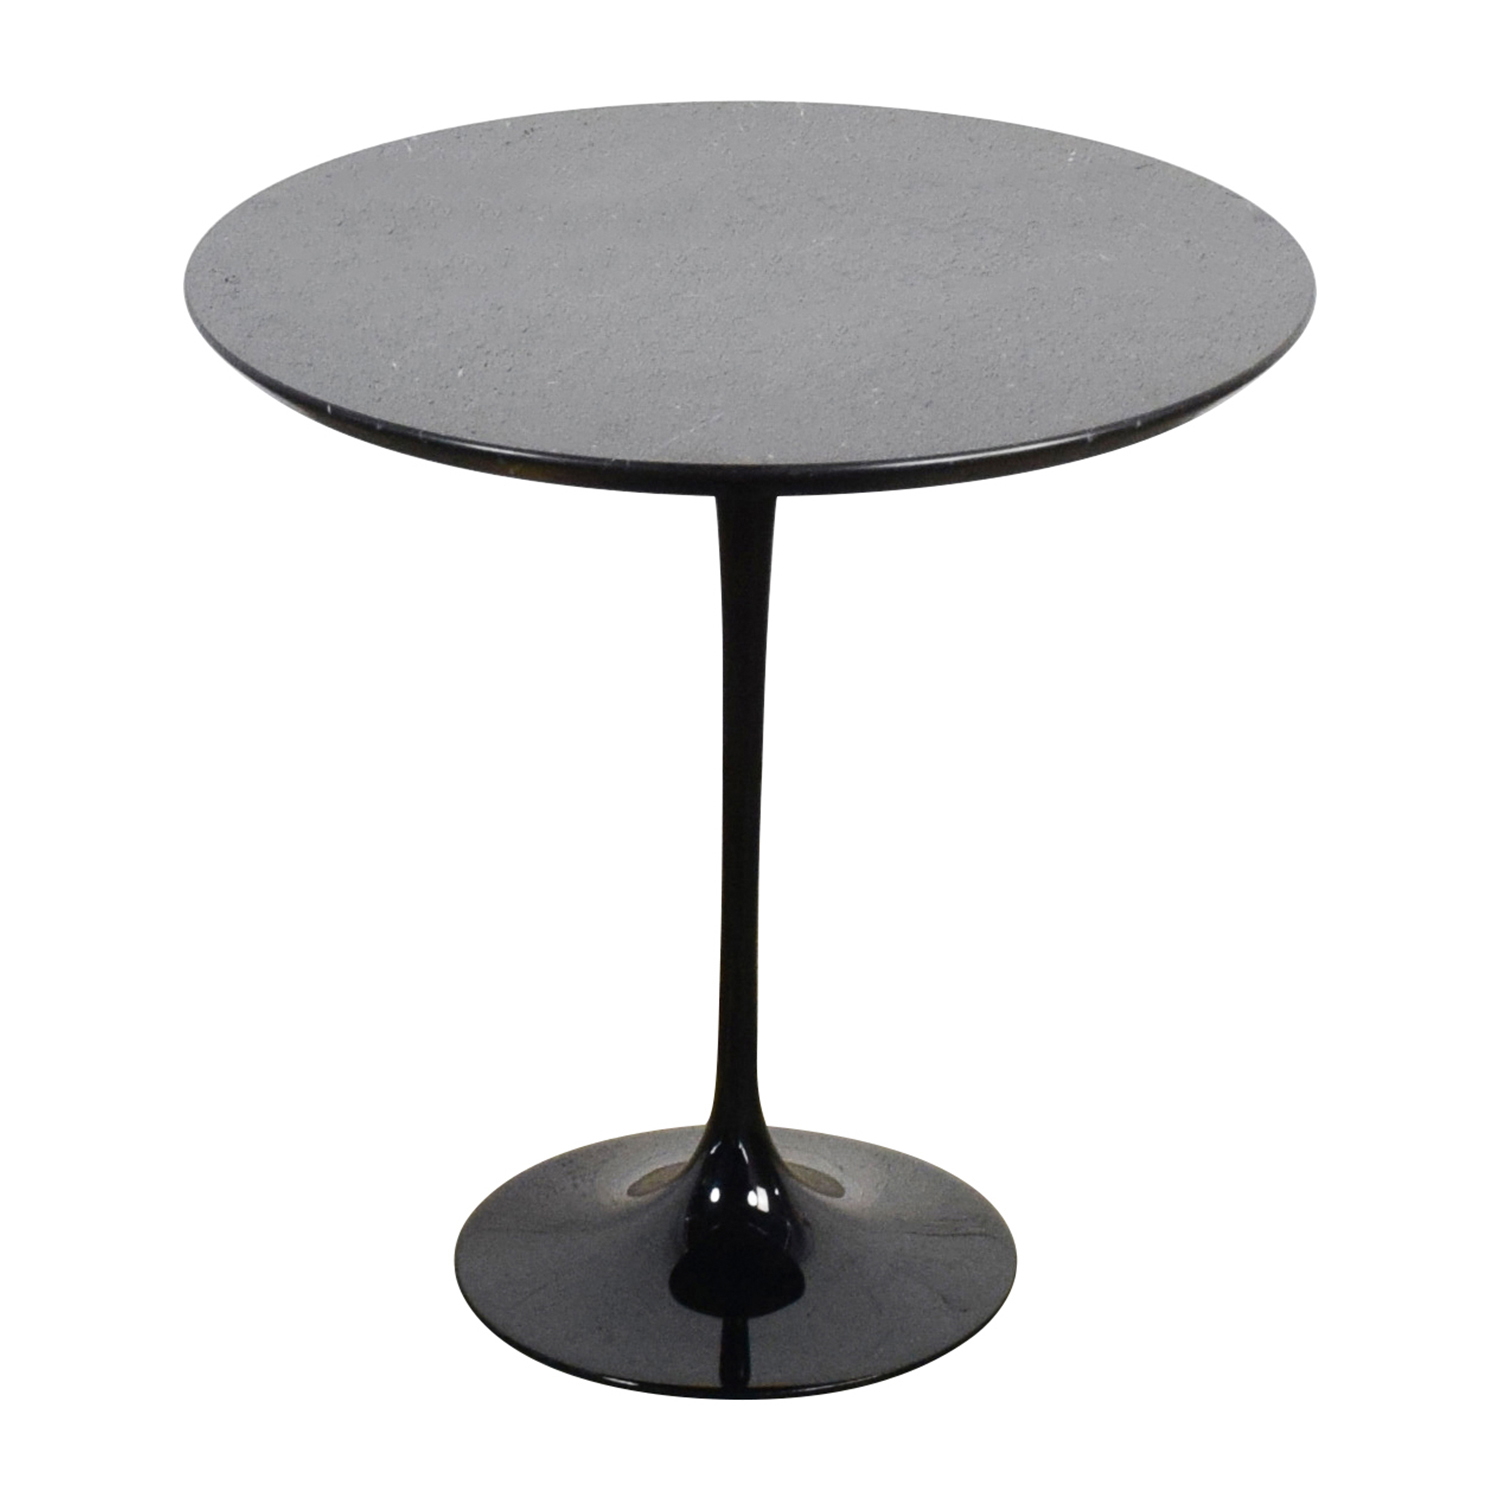 Saarinen Saarinen Black Marble End Table second hand